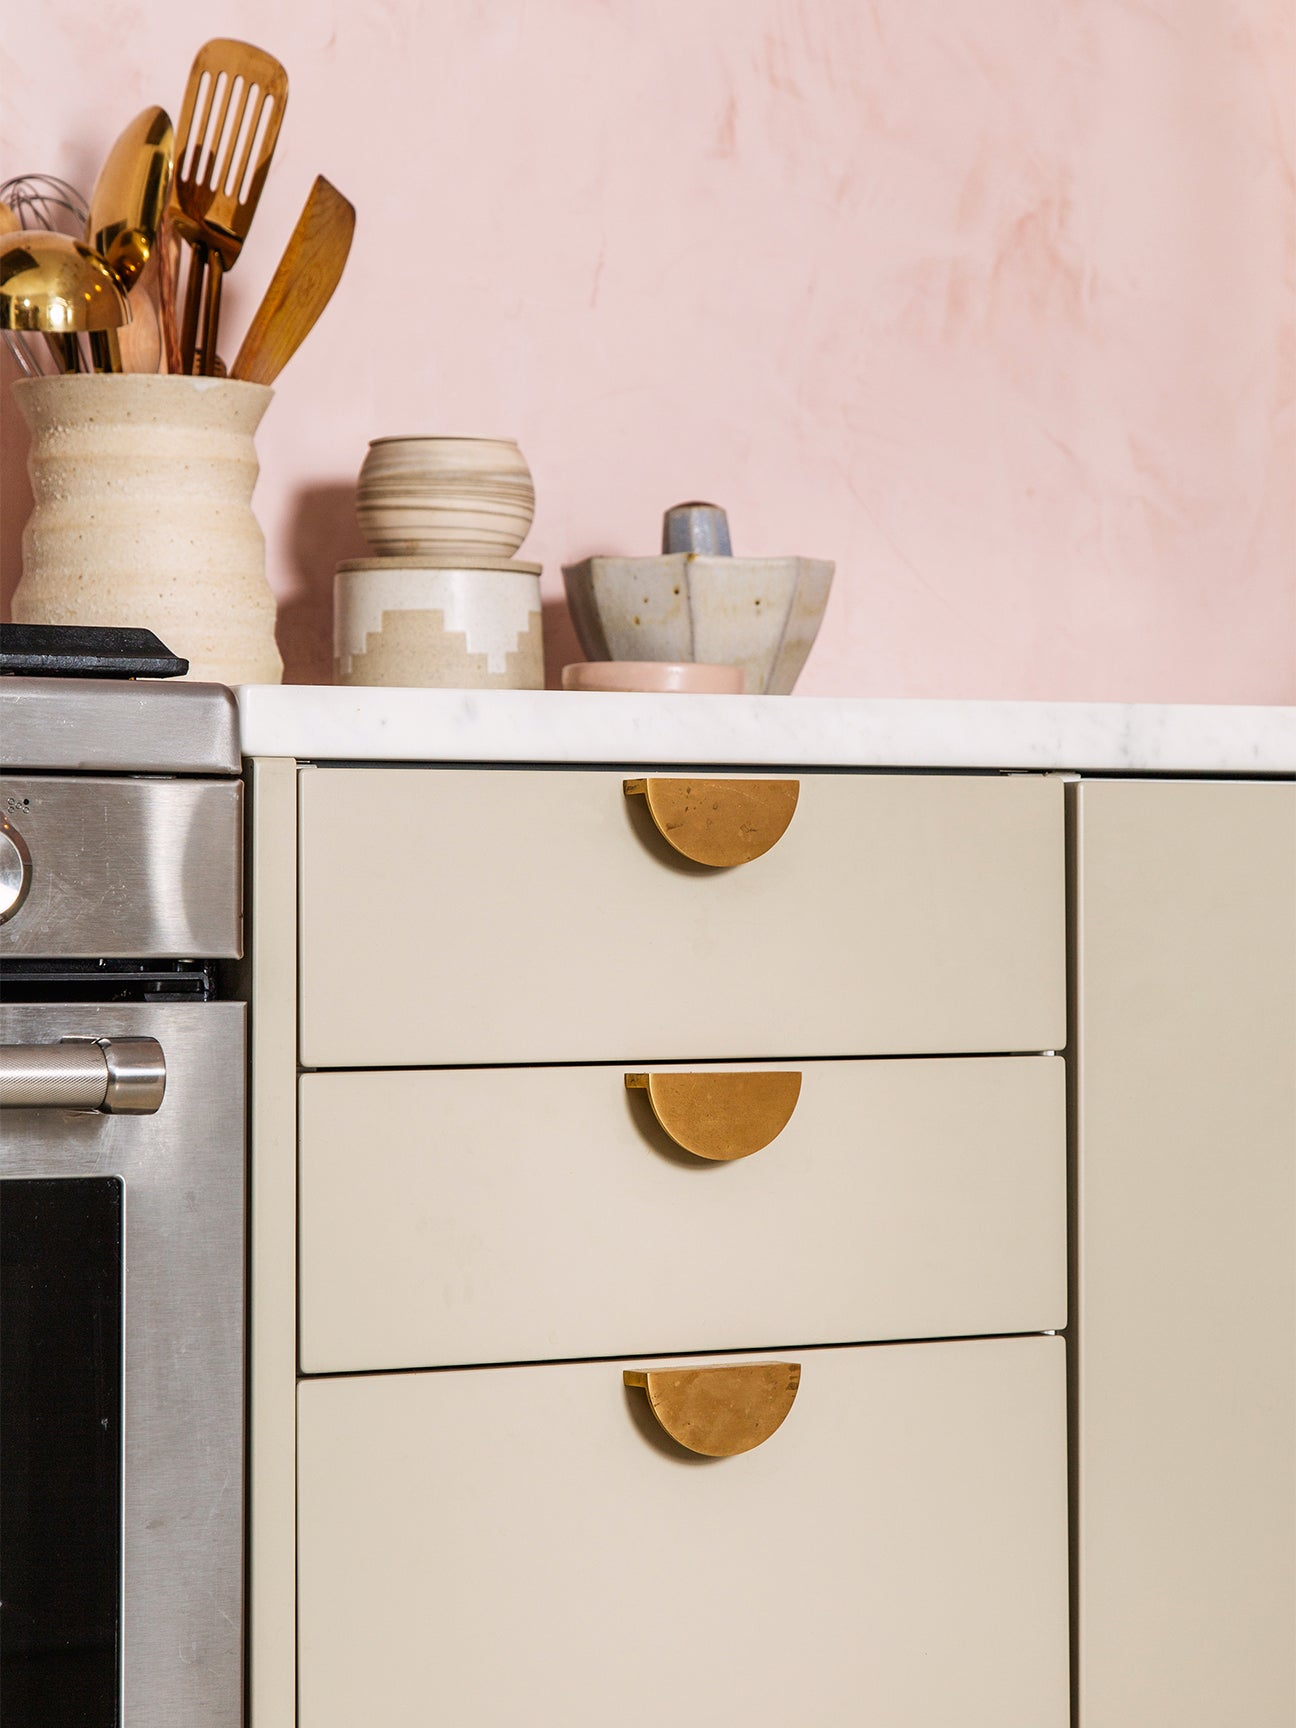 20 Kitchen Cabinet Hardware Options to Upgrade Your Rental Kitchen